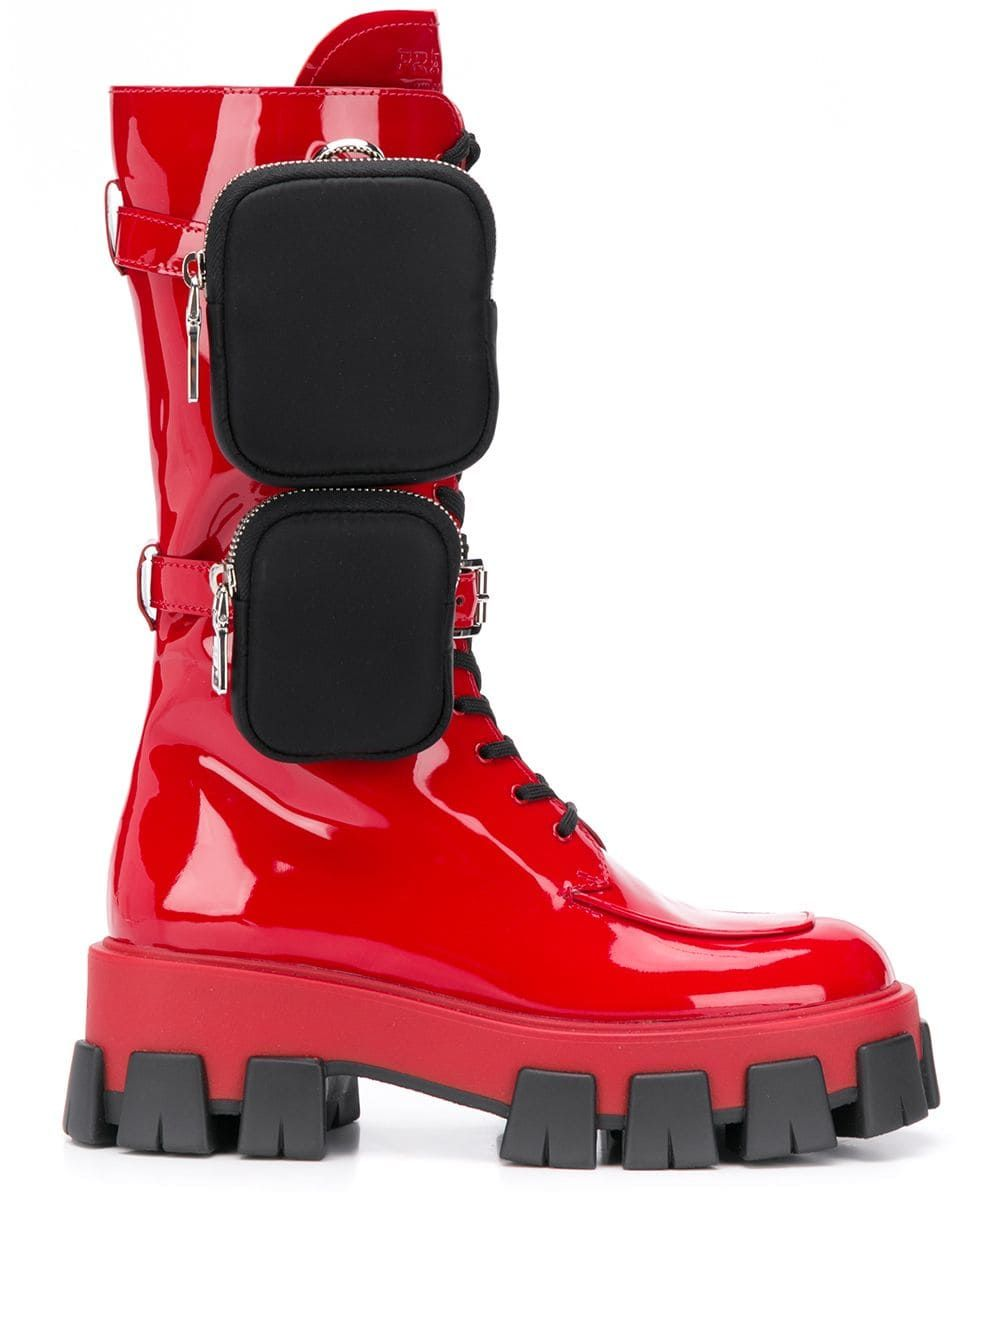 Prada Red Leather Boots   ModeSens